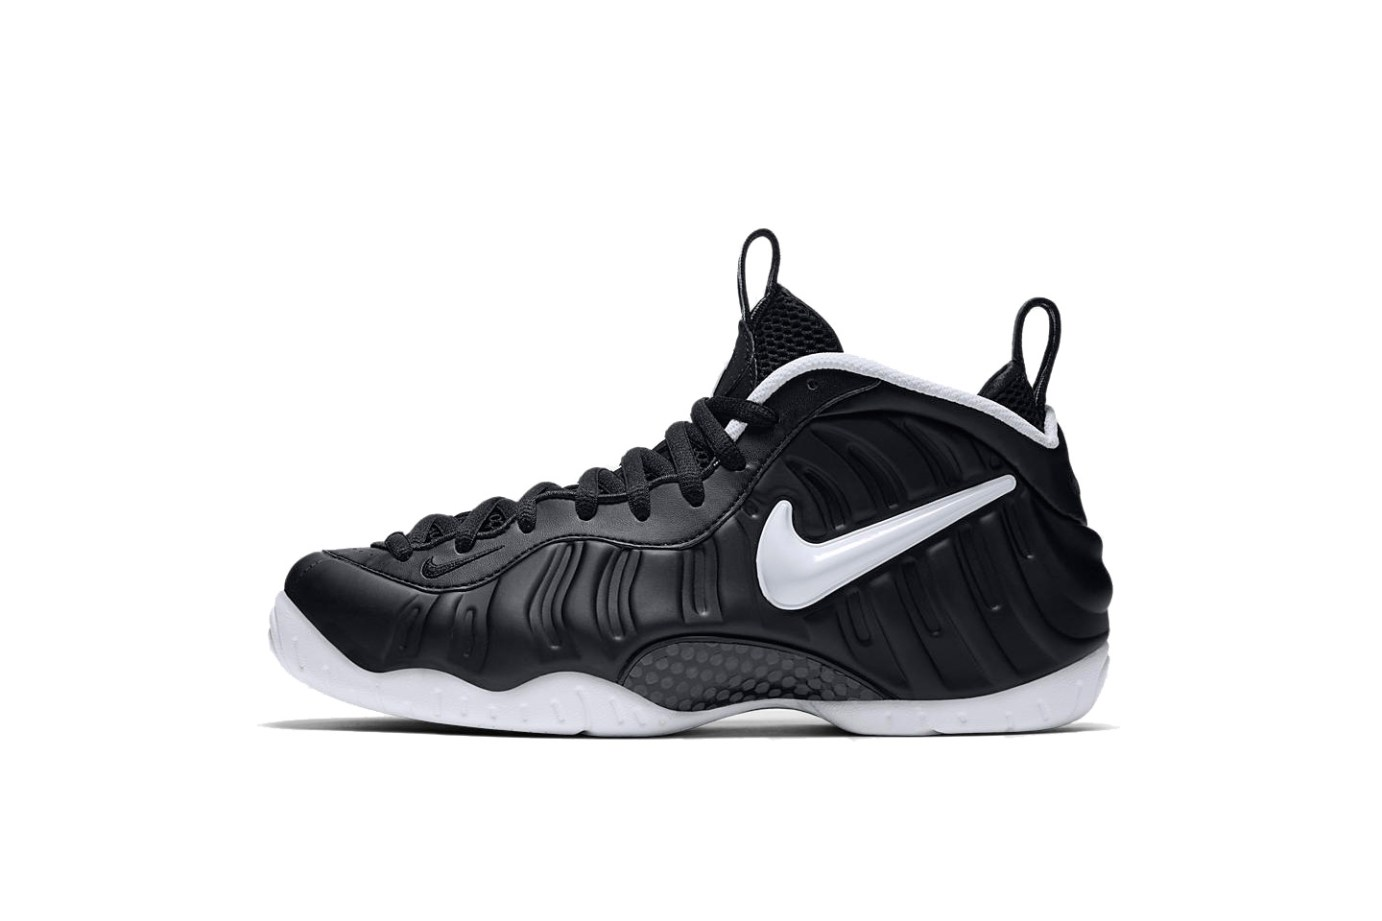 96b5a2d9518 The Nike Air Foamposite Dr. Doom is Coming Back